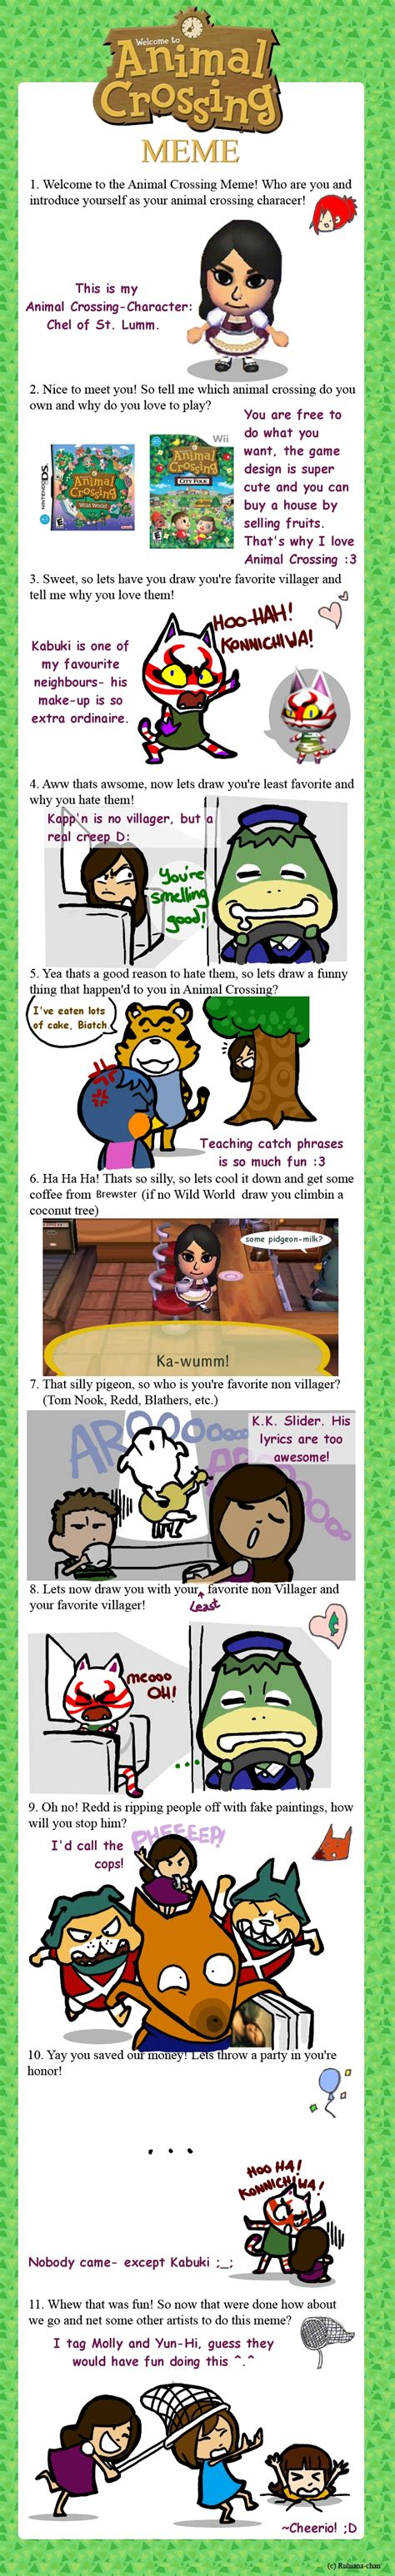 Animal Crossing Memes - animal crossing meme by shiolein on deviantart